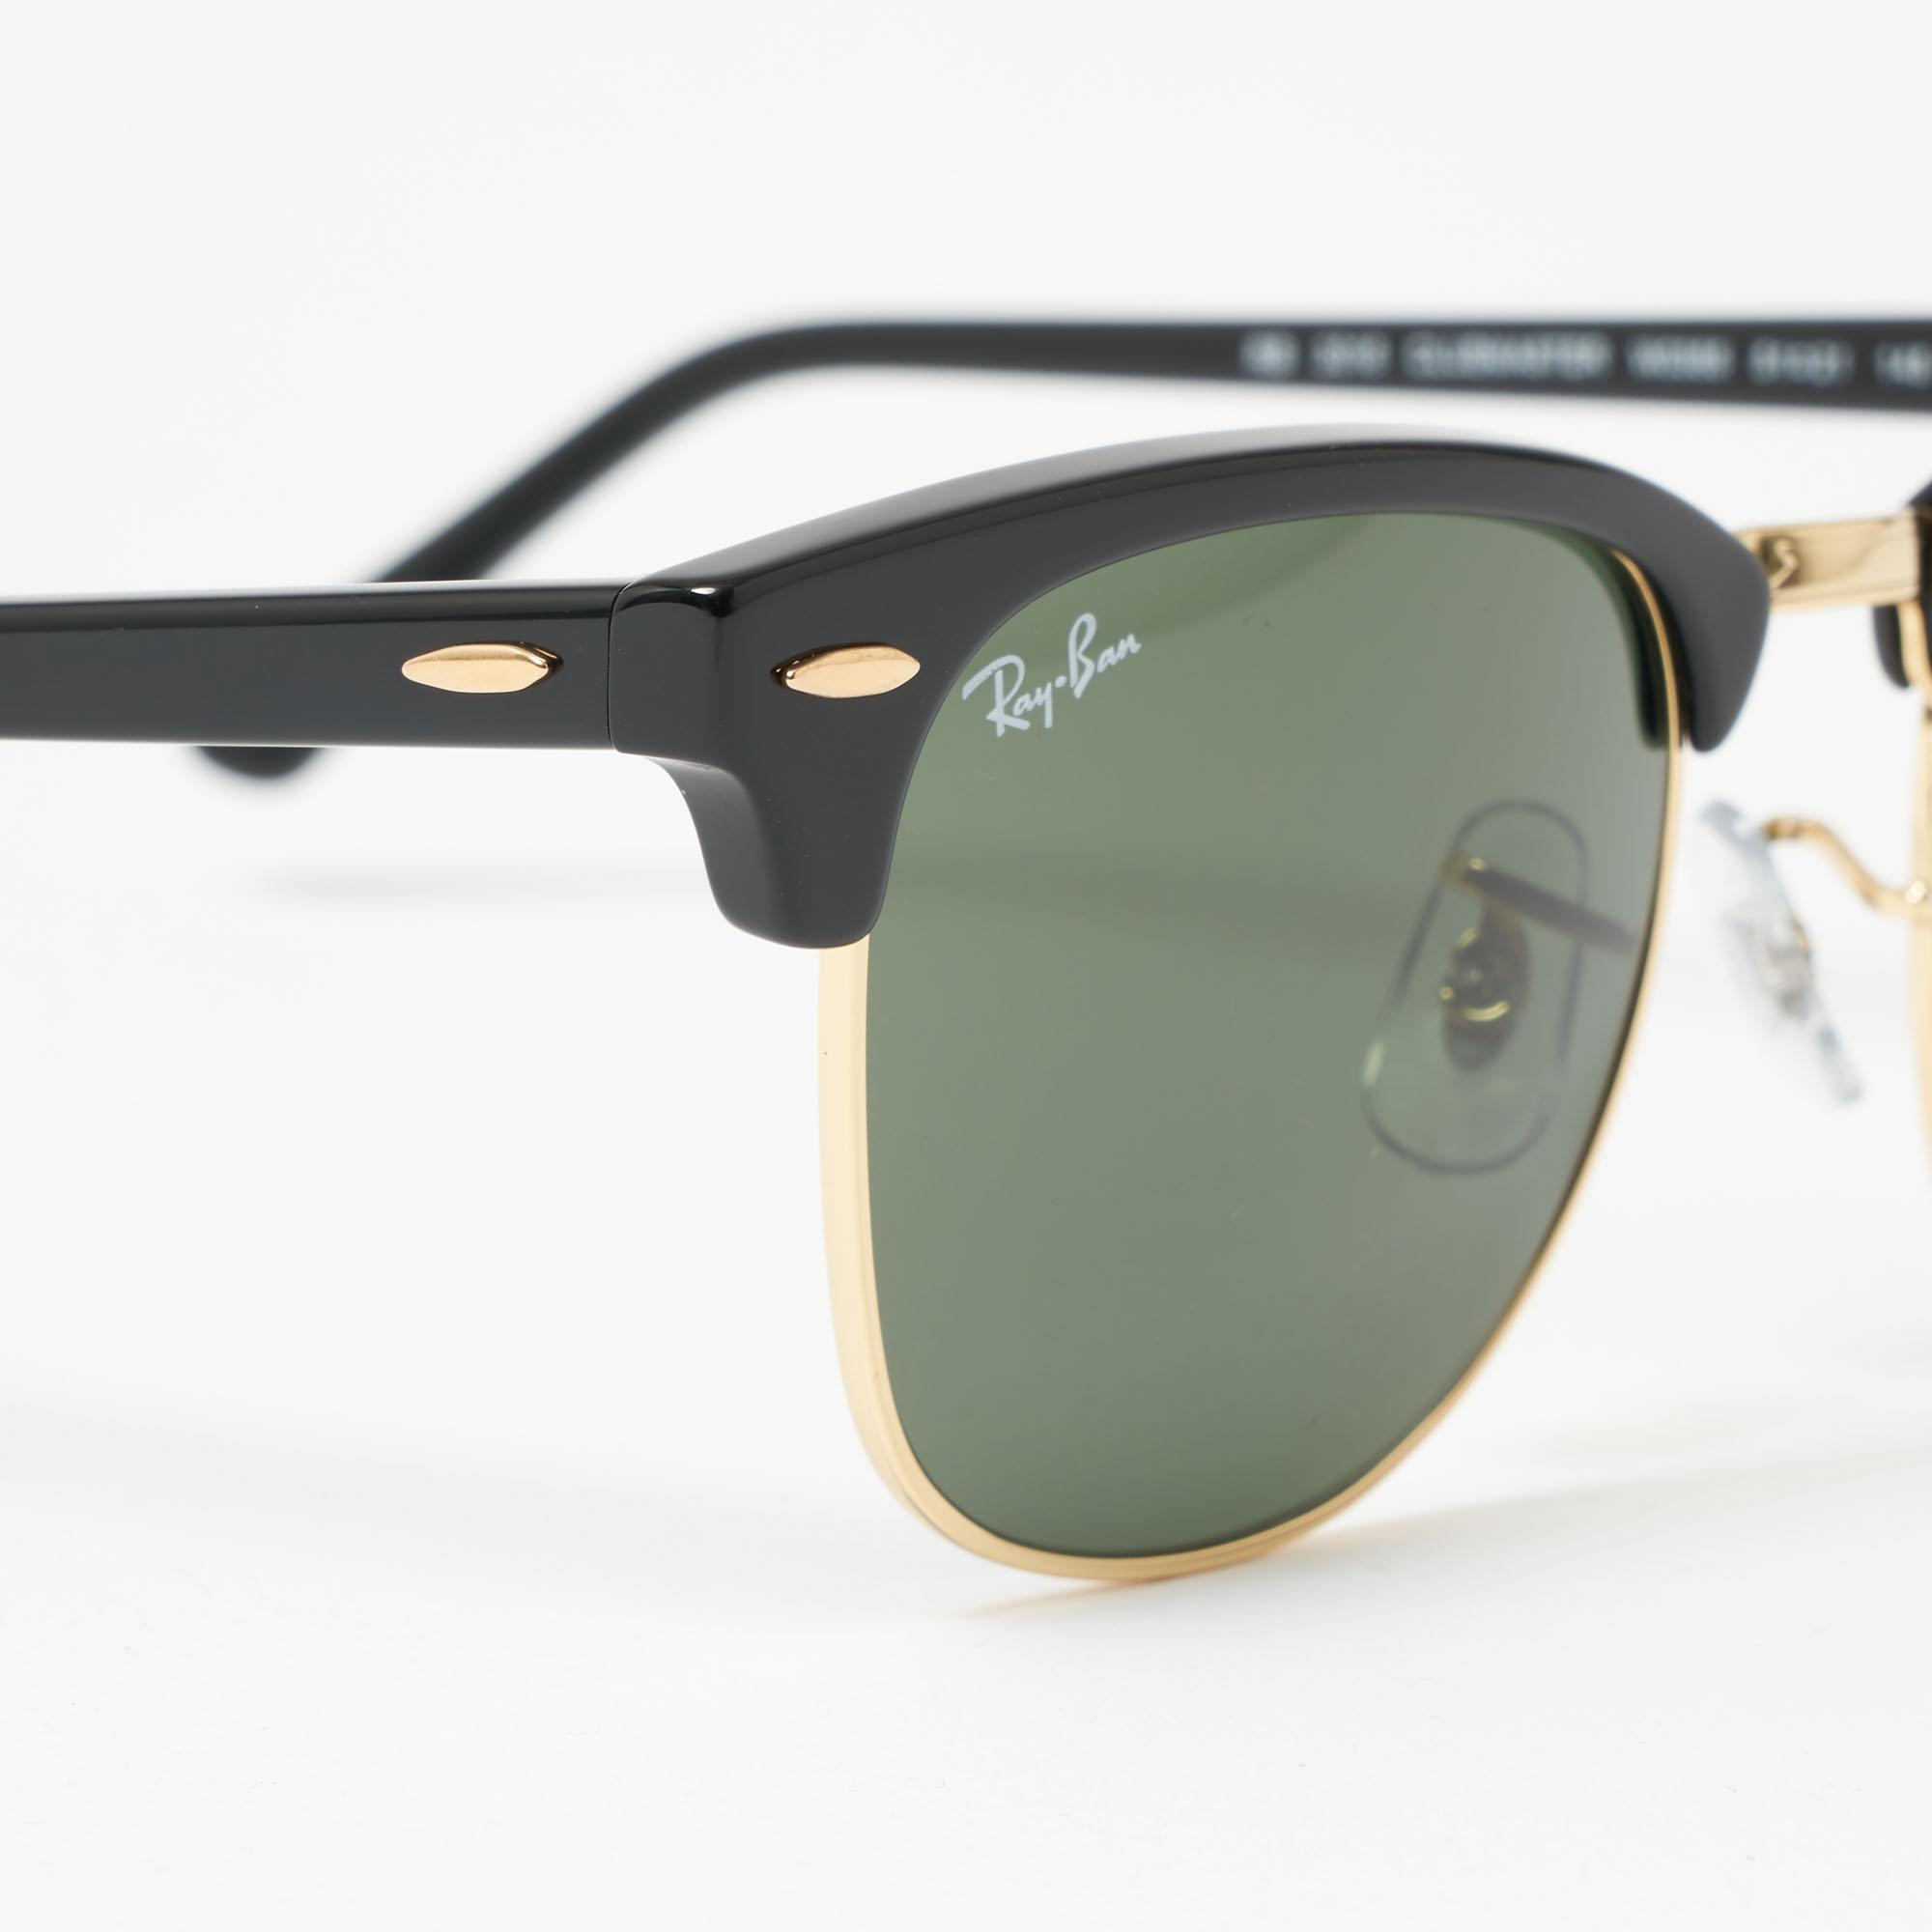 a2d5afc3df ... Black Clubround Classic Sunglasses - Green Classic G-15 Lenses for.  View fullscreen